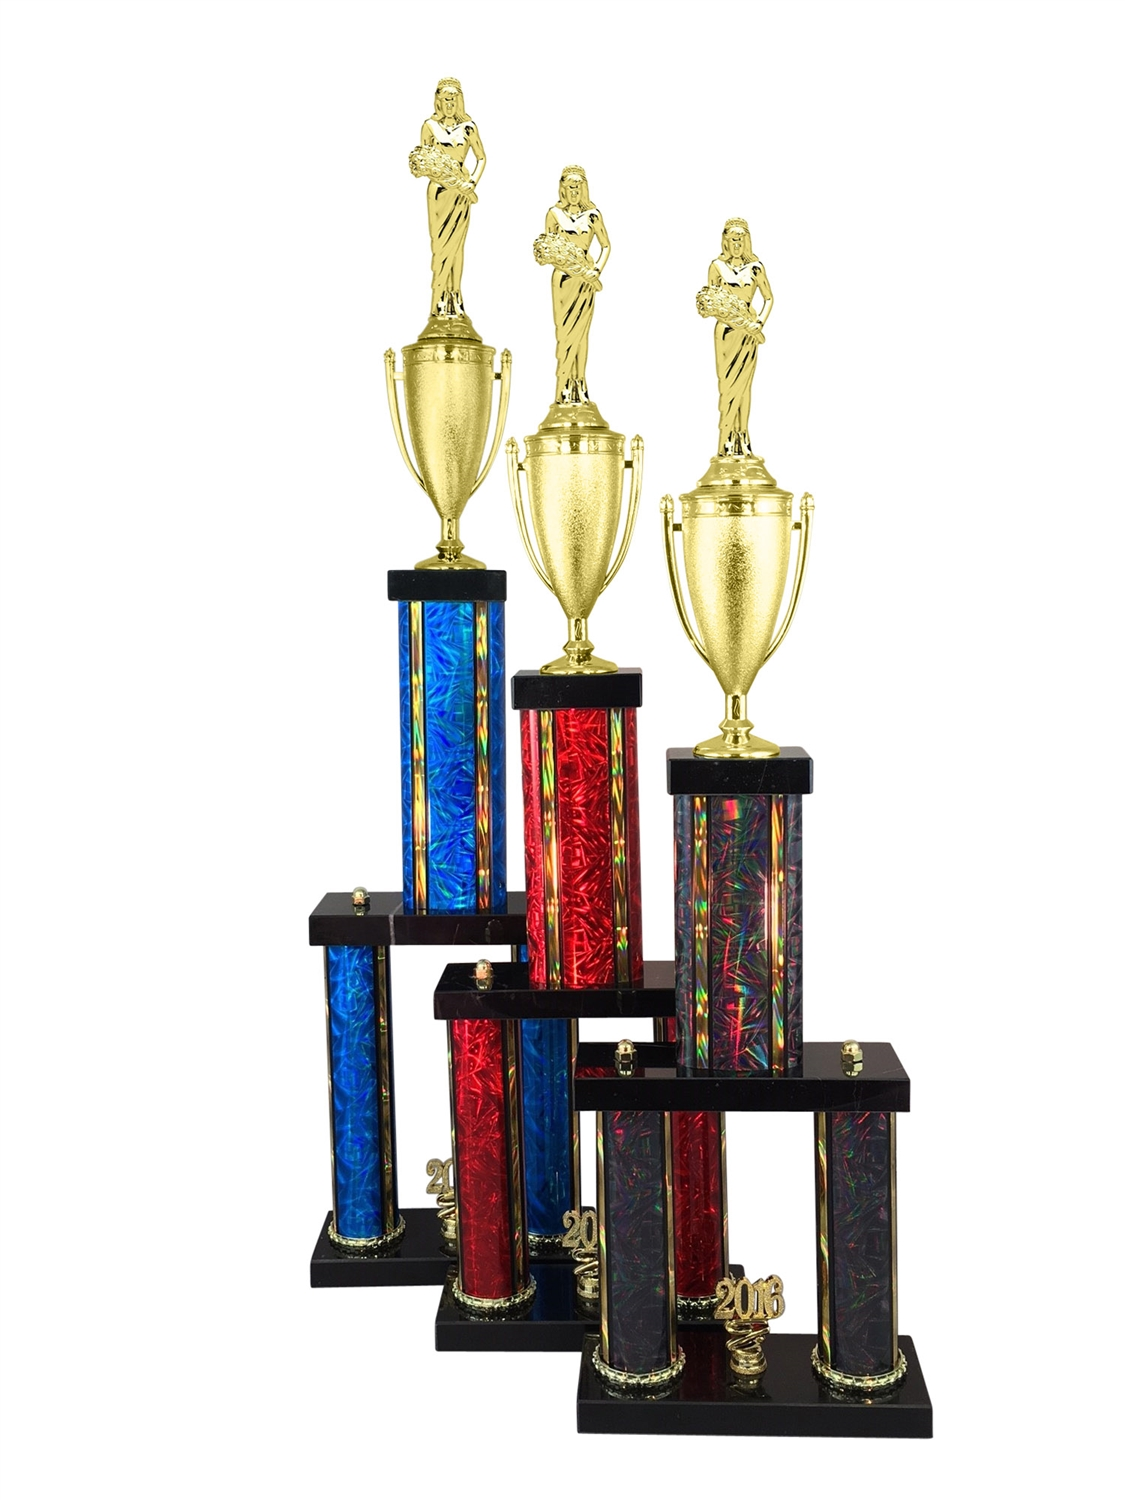 2 Column Beauty Queen Trophy in 11 Color & 6 Size Options